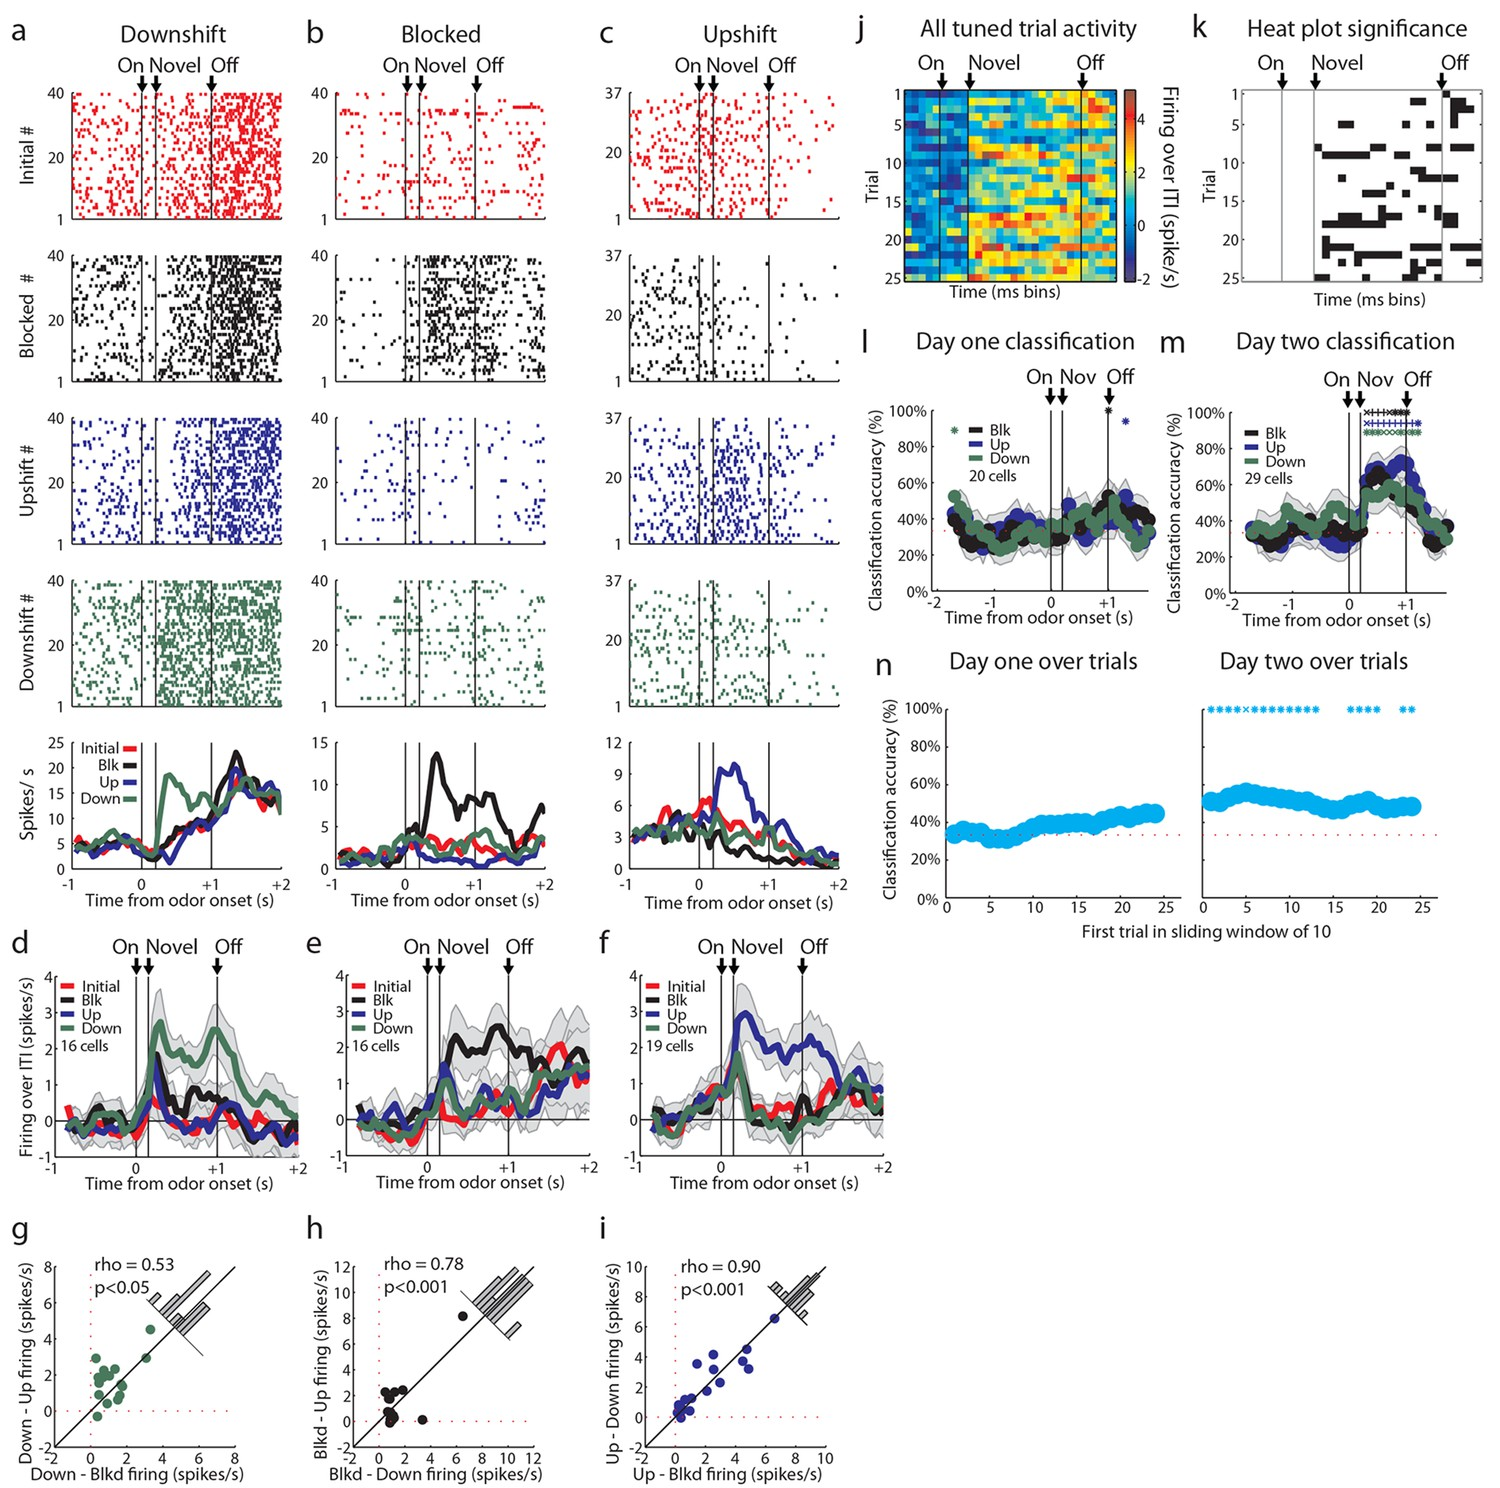 Figures and data in Lateral orbitofrontal neurons acquire responses